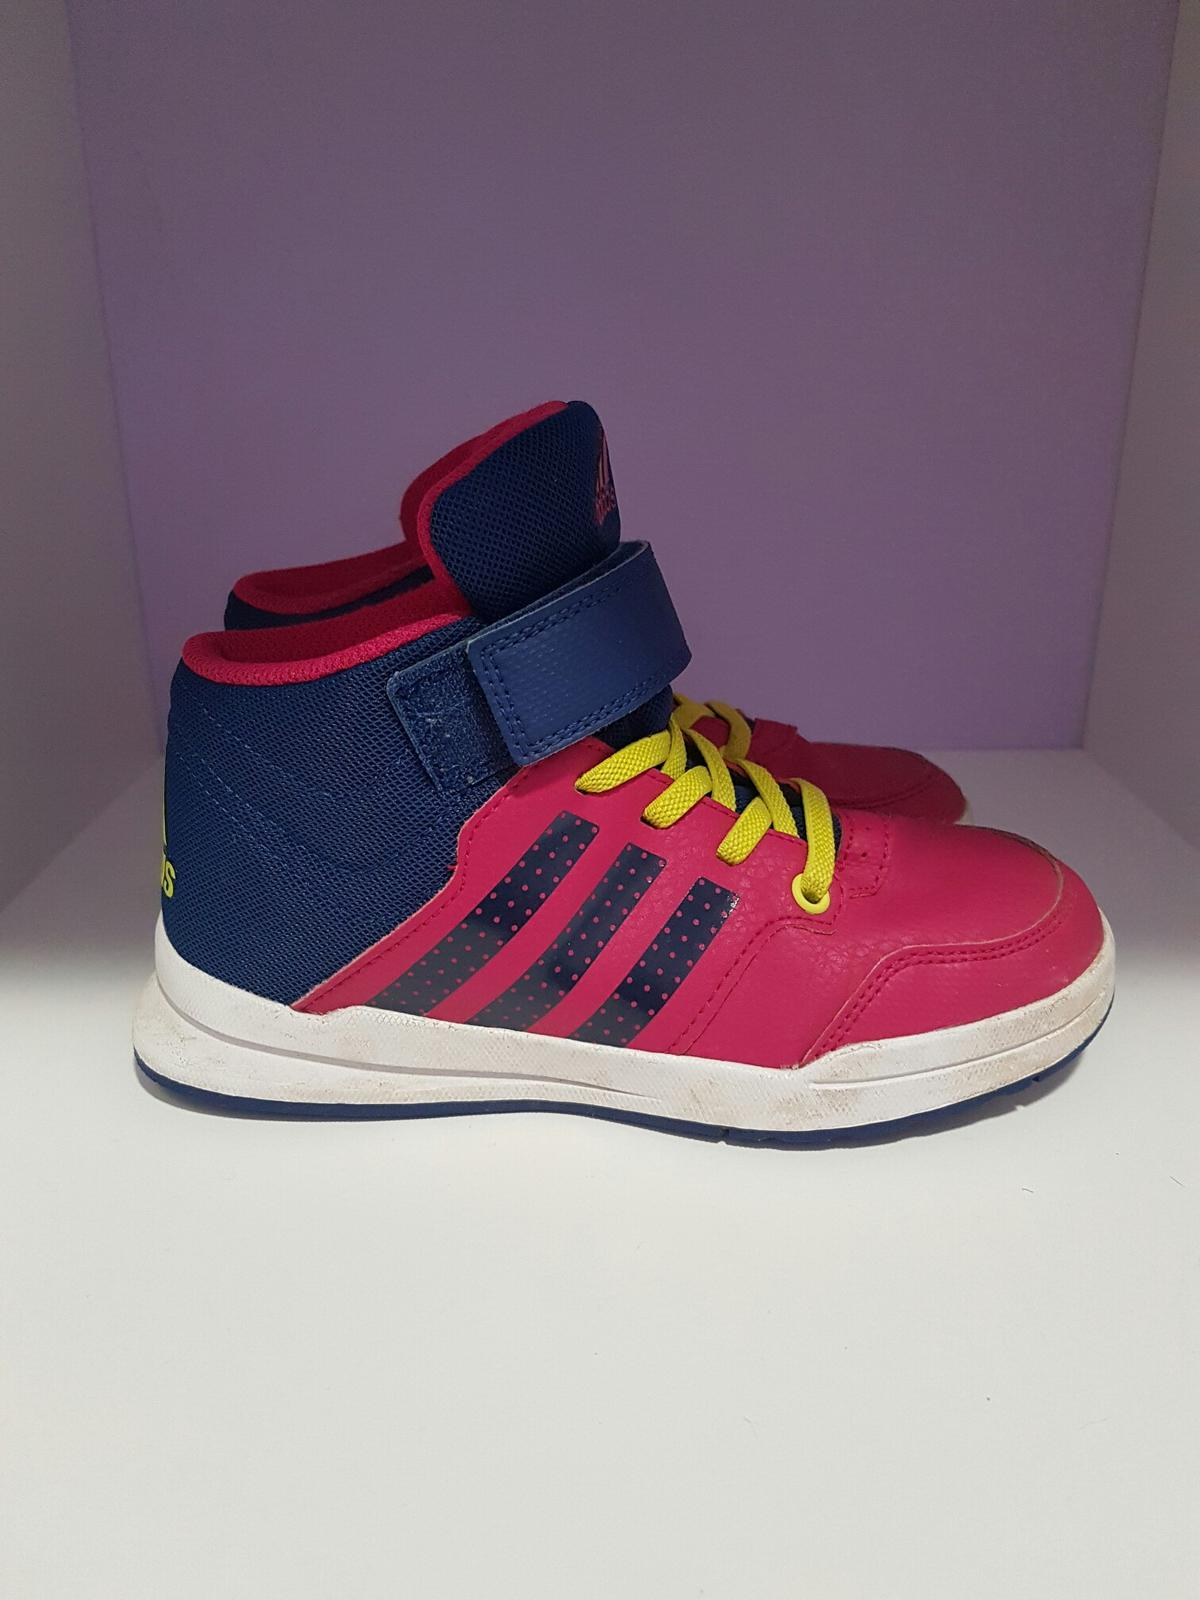 Schuhe High 31Kinder 8020 Graz Gr For00 In Sneakers Adidas